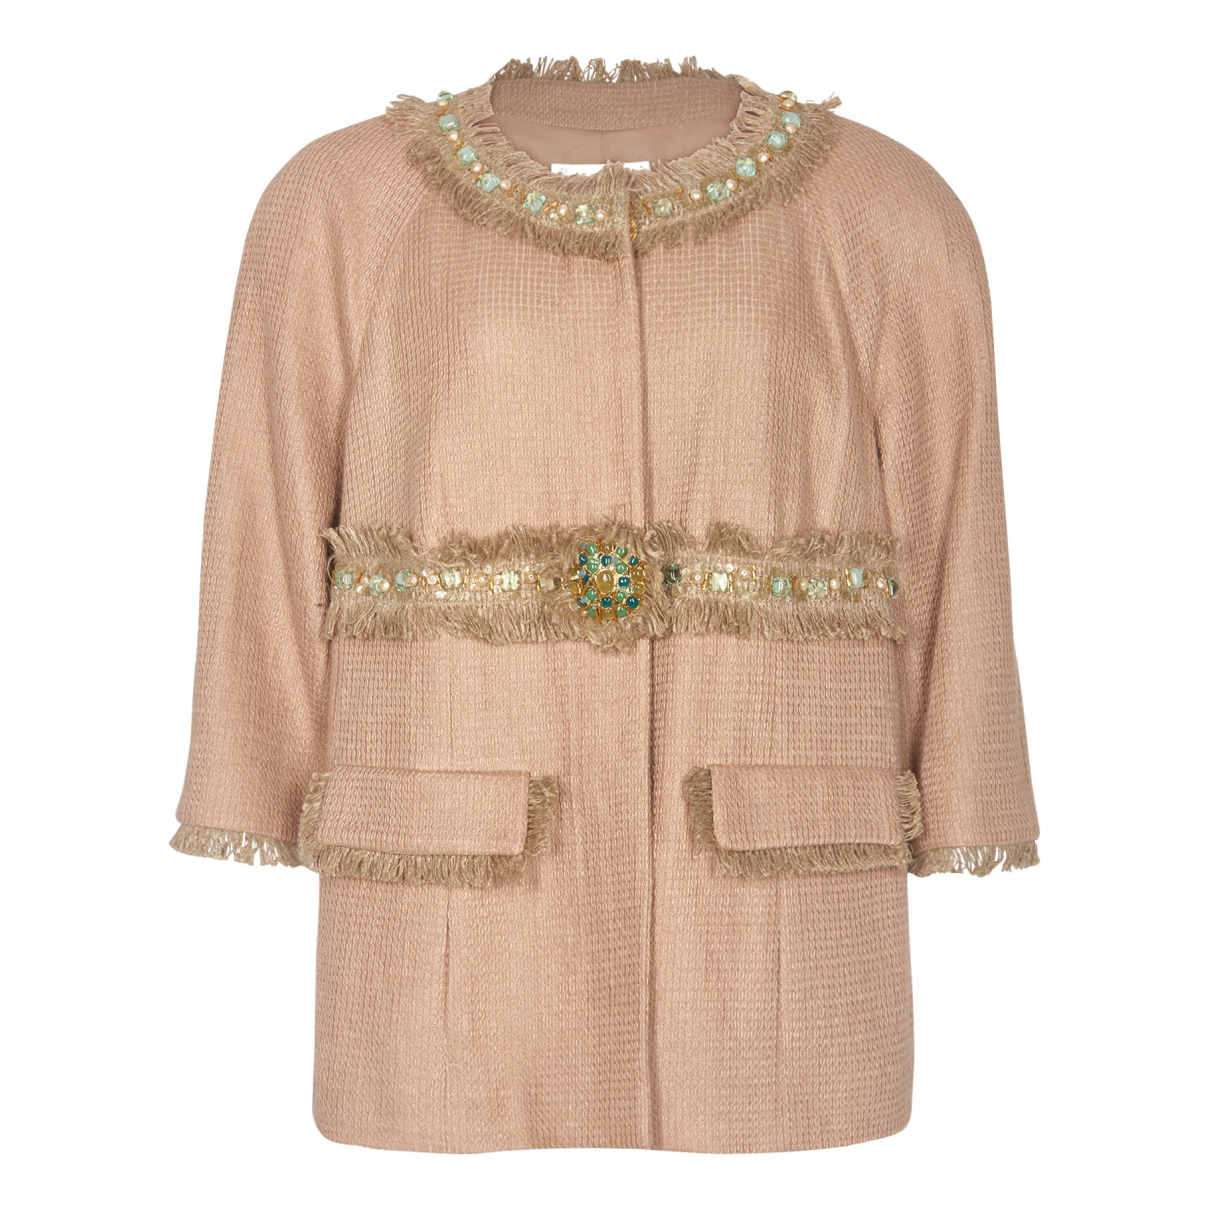 Chanel N Pink Cotton jacket for Women 18-20 UK